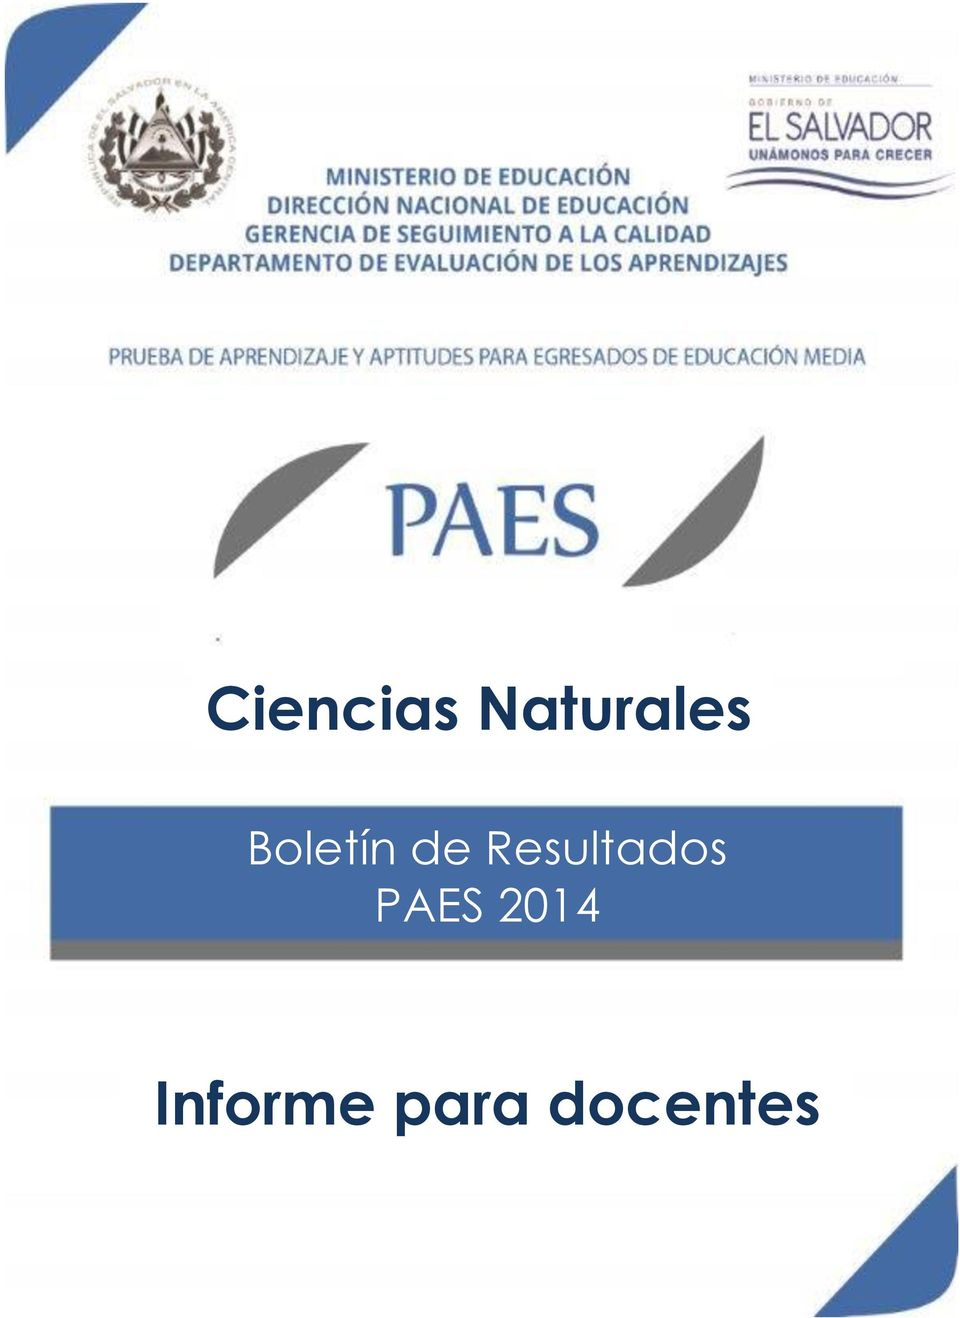 PAES 2014